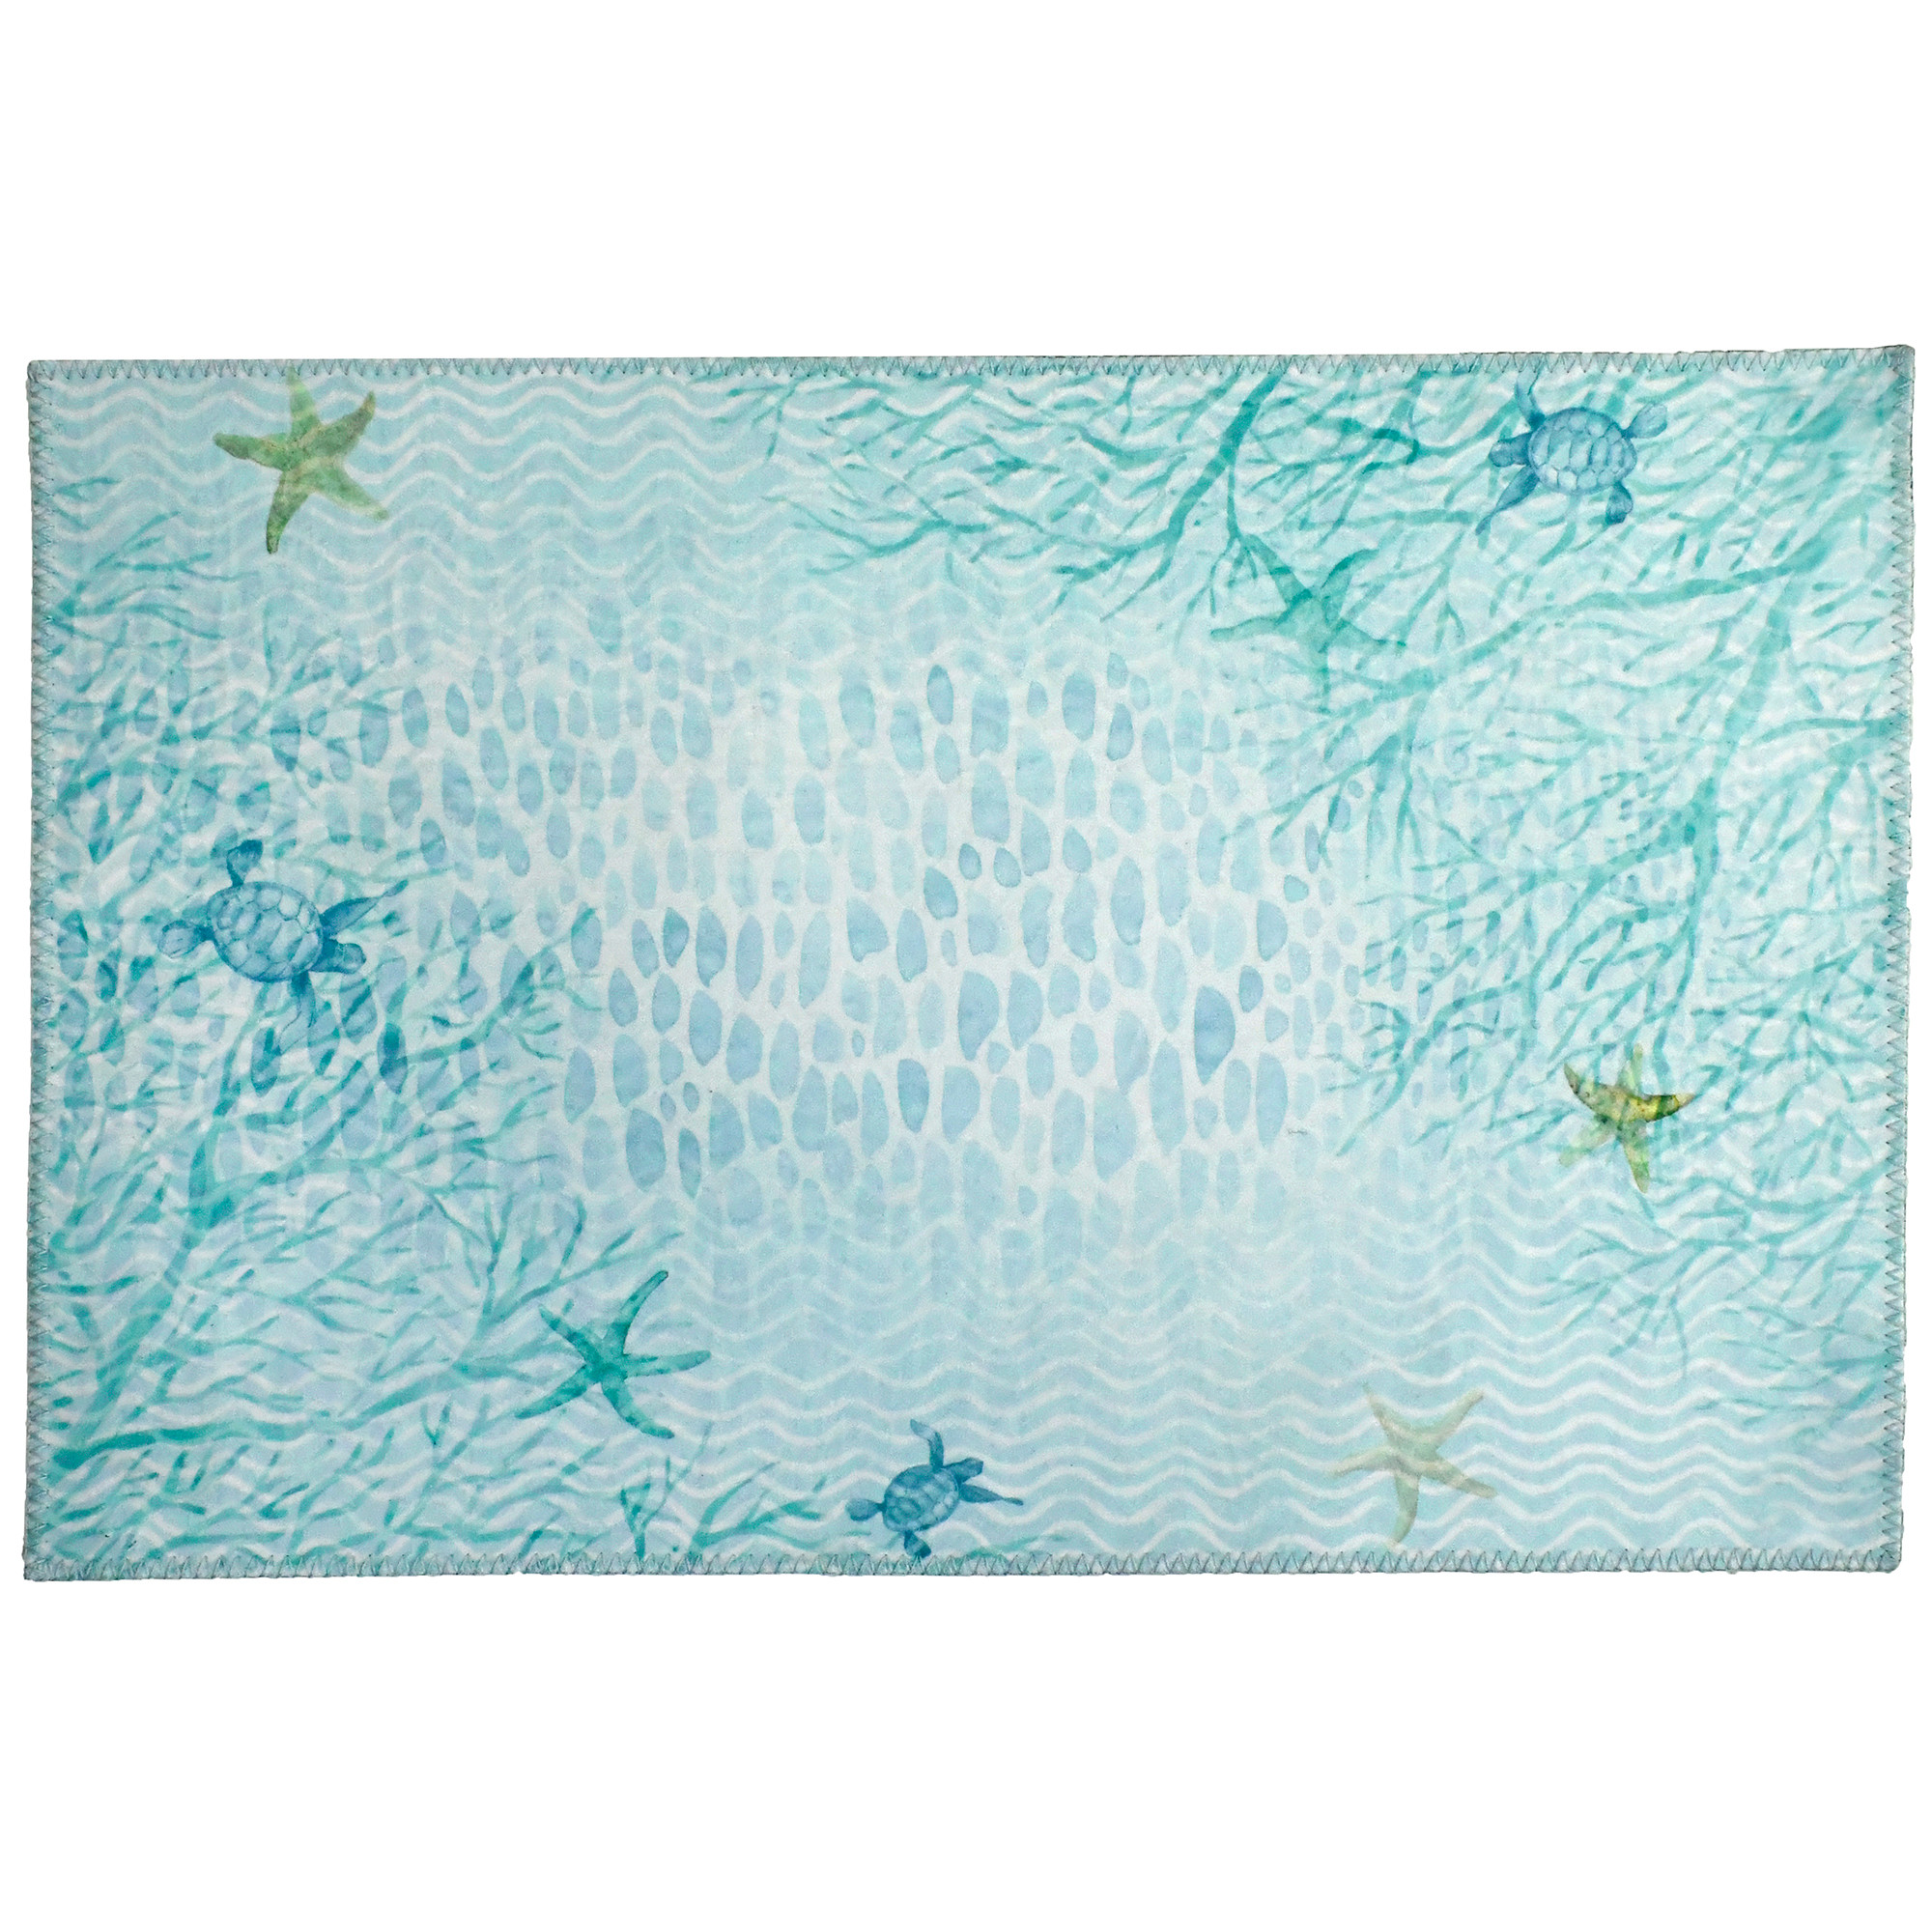 Printed polyester on this Homefires by Jellybean® poly-sued floor cloth offers a clear aquamarine view of the sea coral. Designed by Sherri Buck Baldwin, this floor cloth is machine washable and available in four sizes.